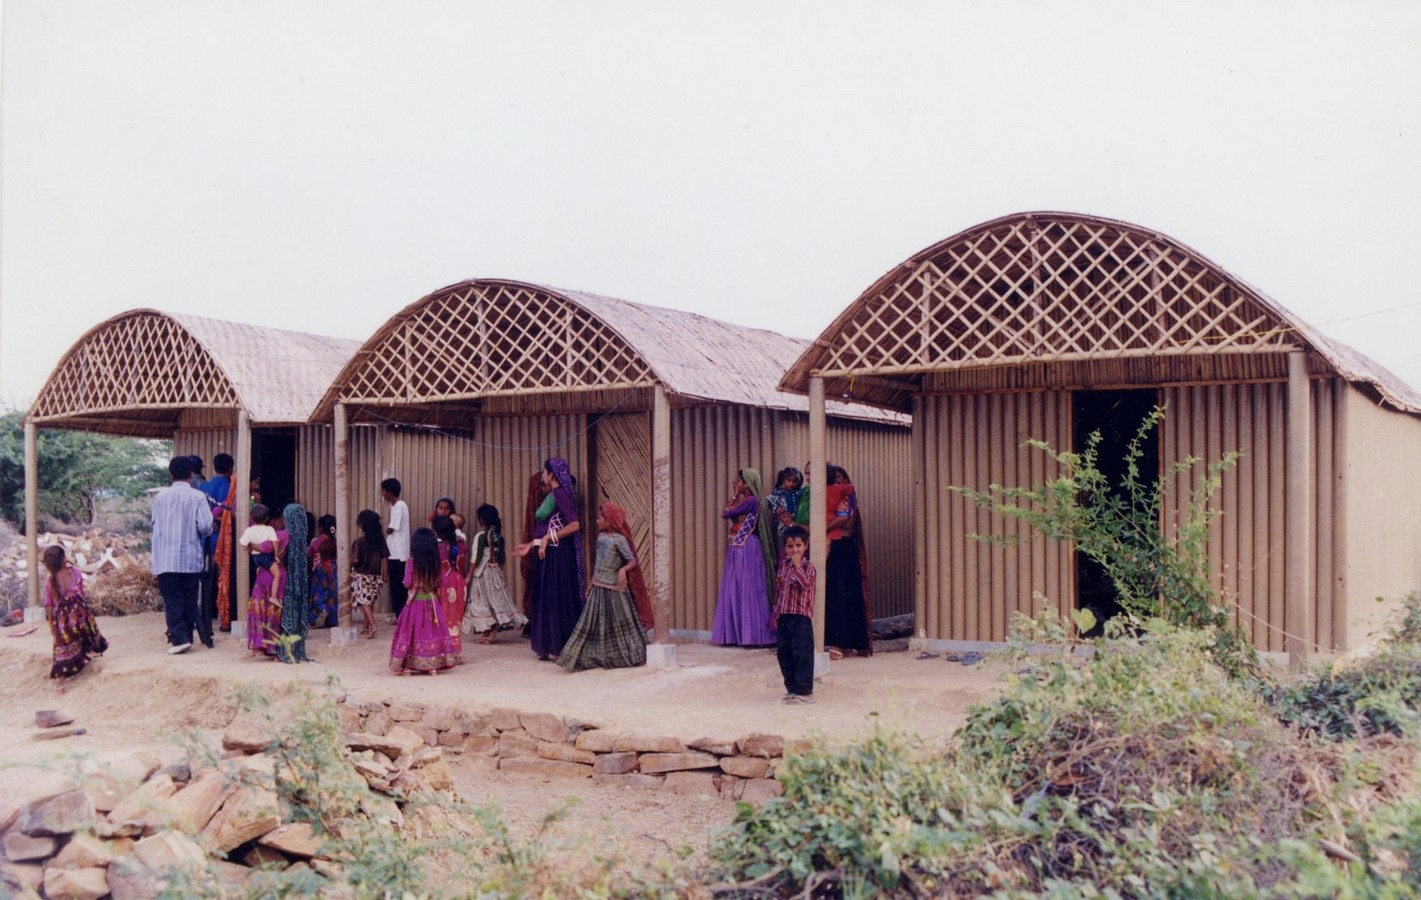 10 Reasons to architects should practice for humanitarian architecture - Sheet18